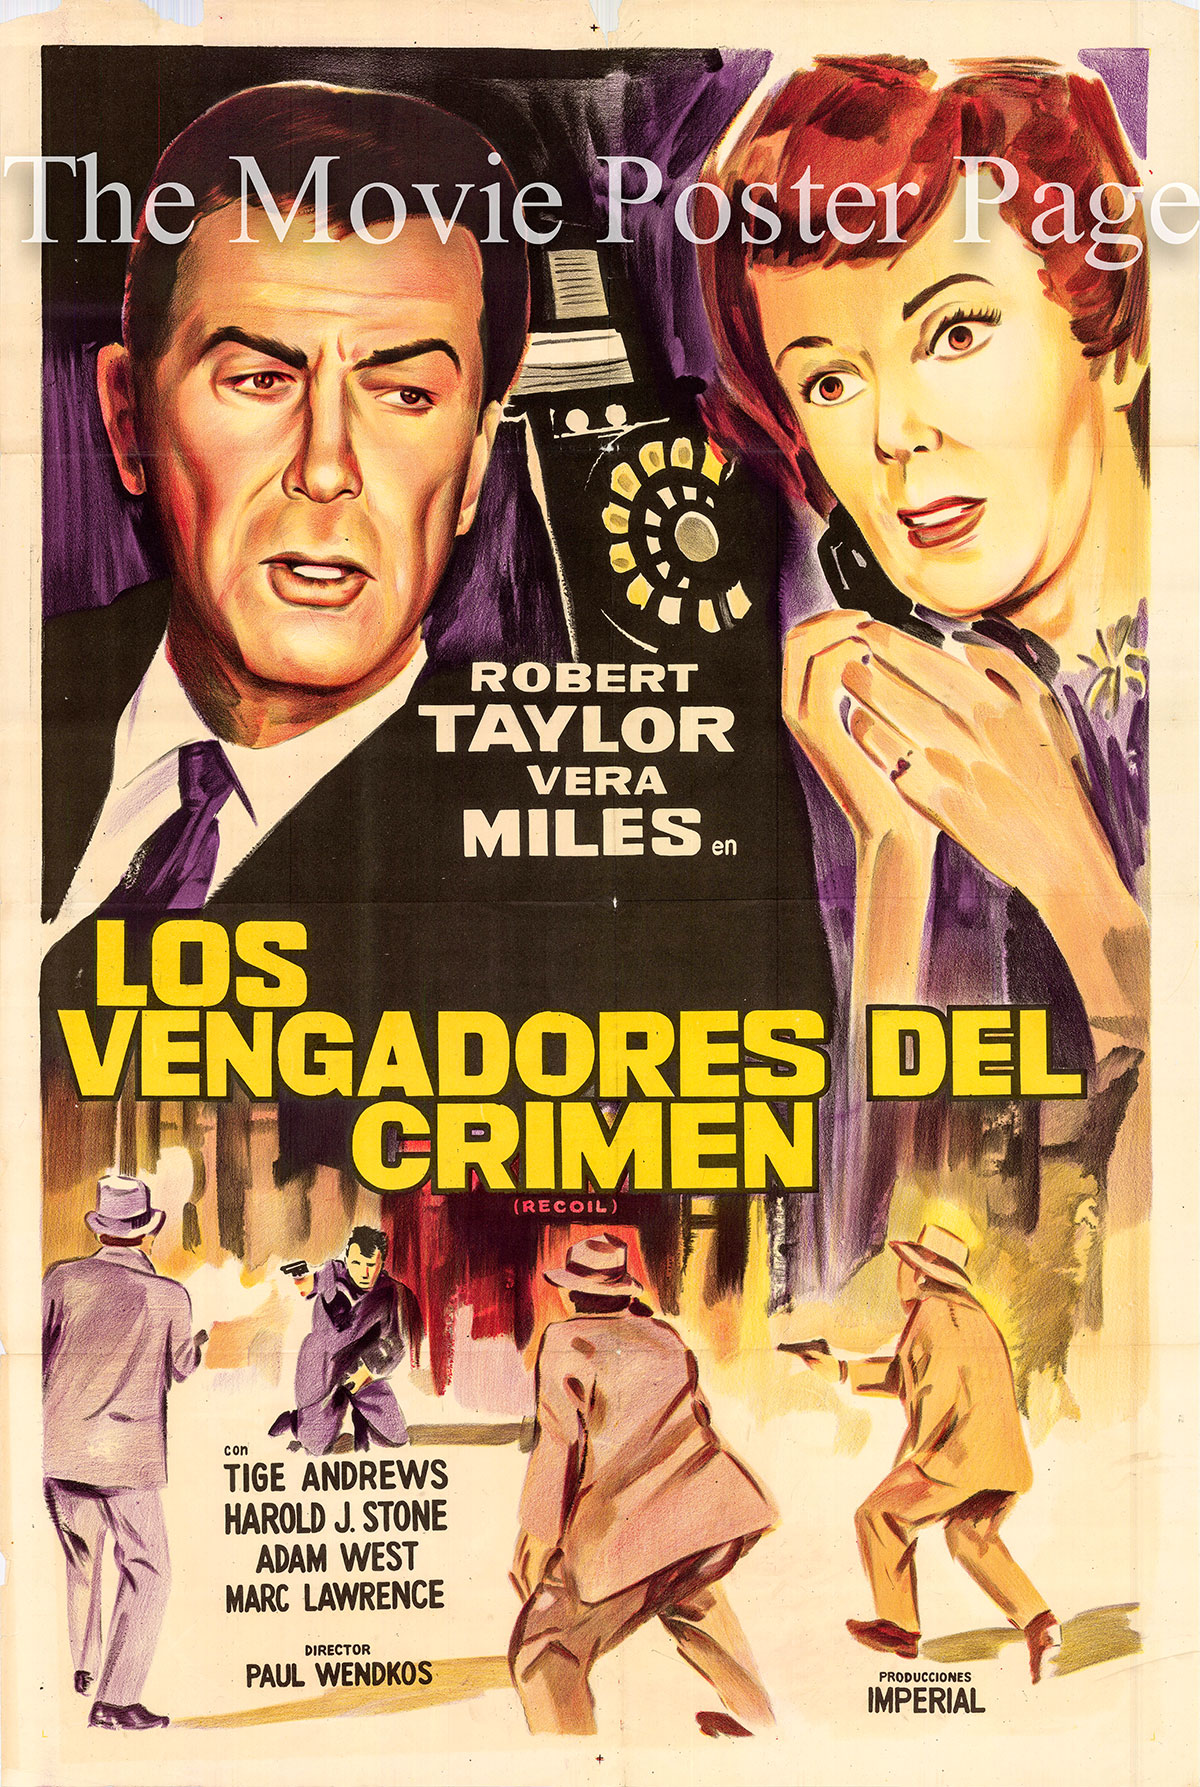 Pictured is an Argentine promotional poster for the 159-1962 TV series The Detectives directed by Paul Wendkos and starring Robert Taylor as Detective Captain Matt Holbrook.